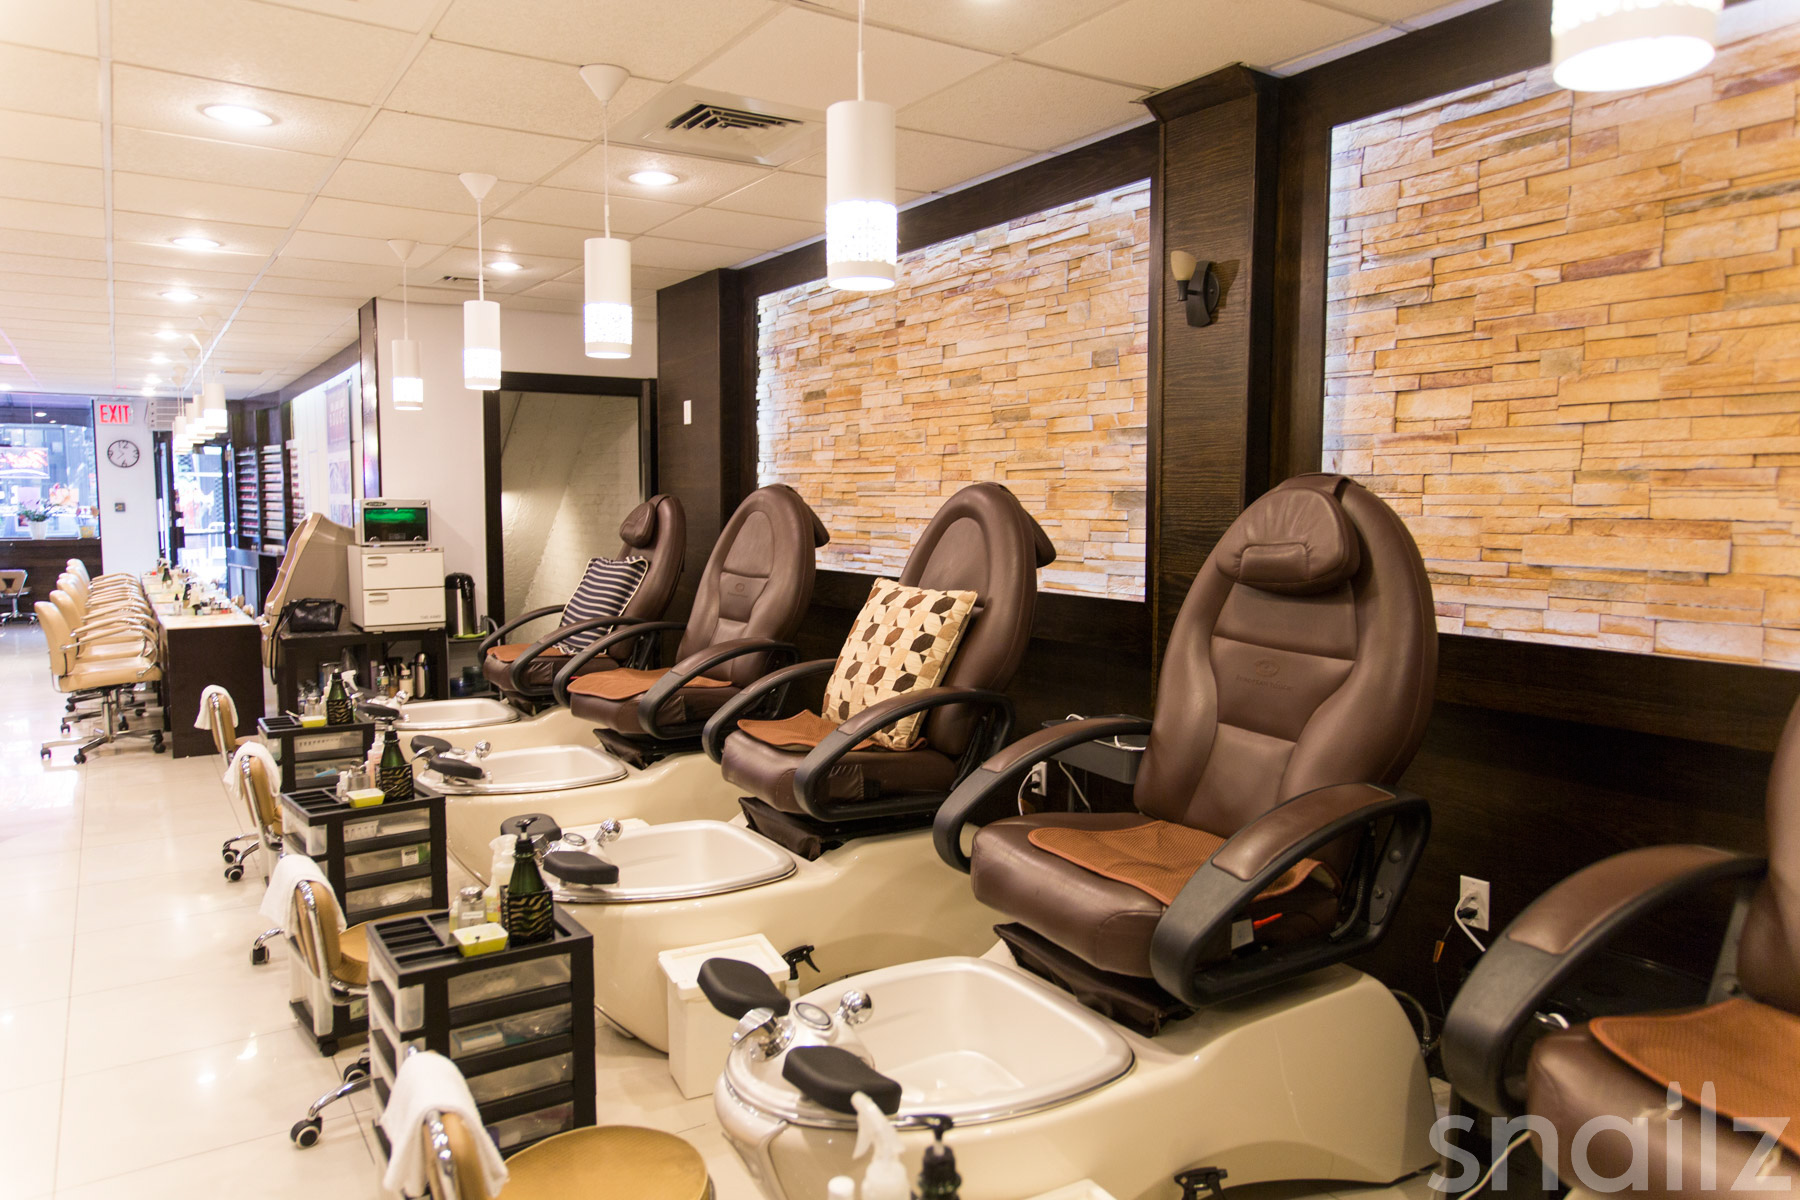 Pedicure Salon Wistaria Nail Spa Salon Full Pricelist And Book Nail Appointment